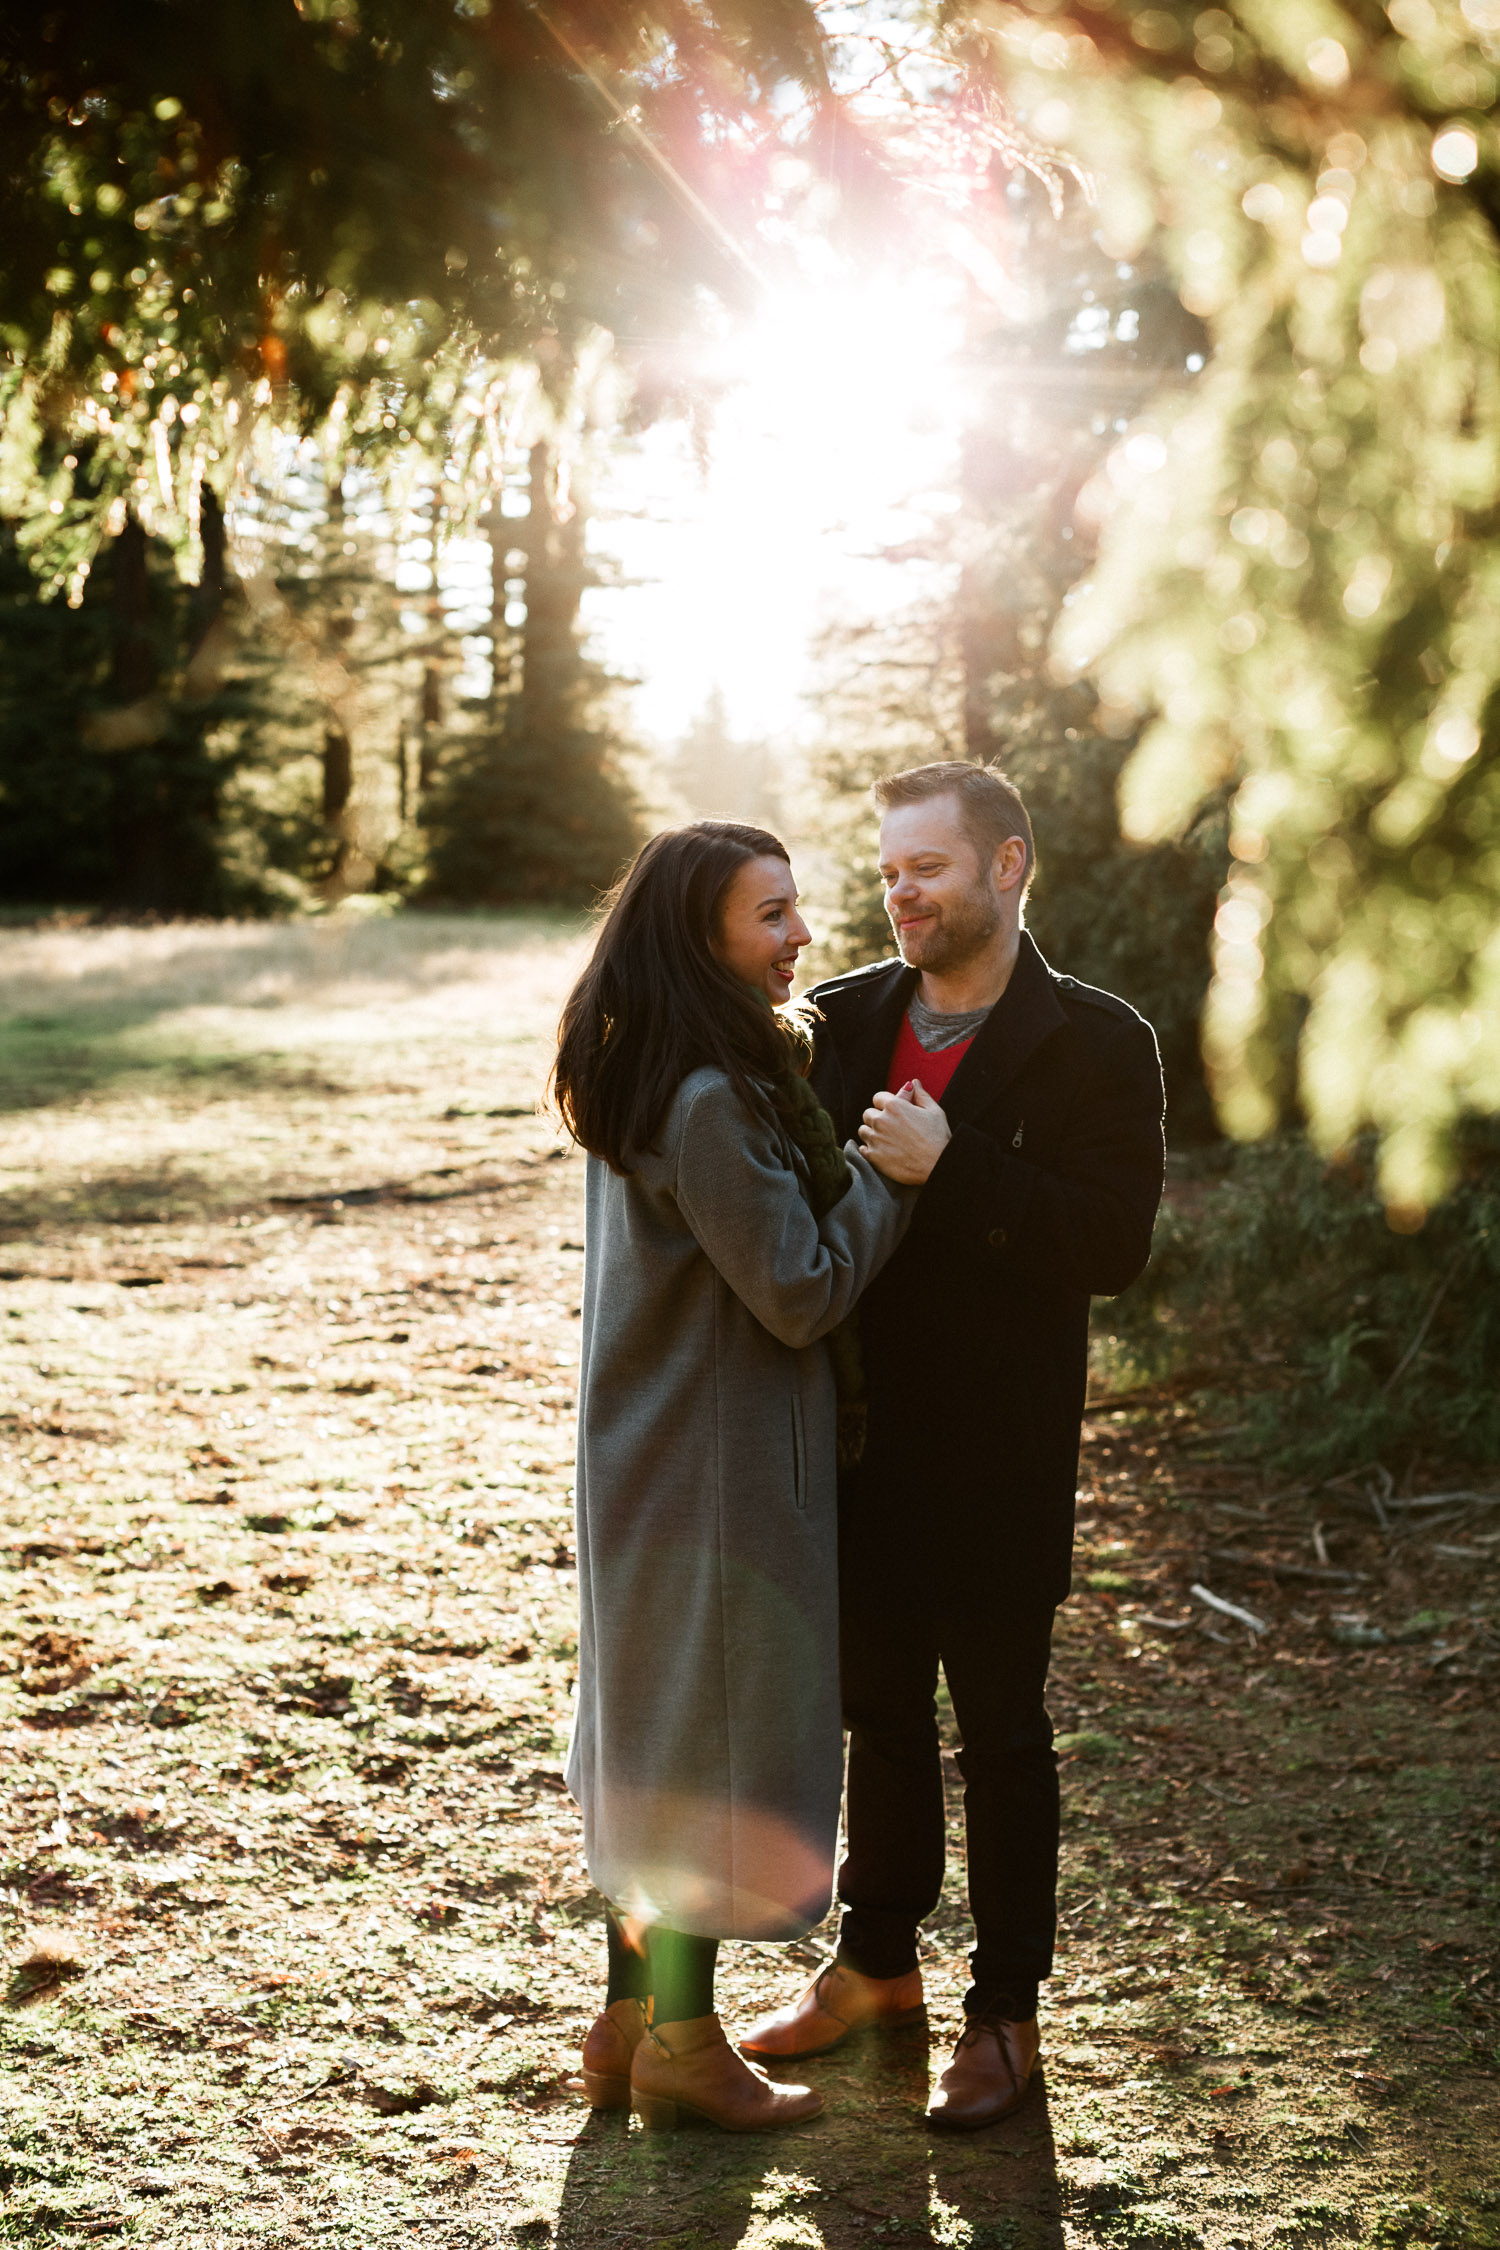 canberra-engagement-photographer-natural-candid-documentary-portrait-couple